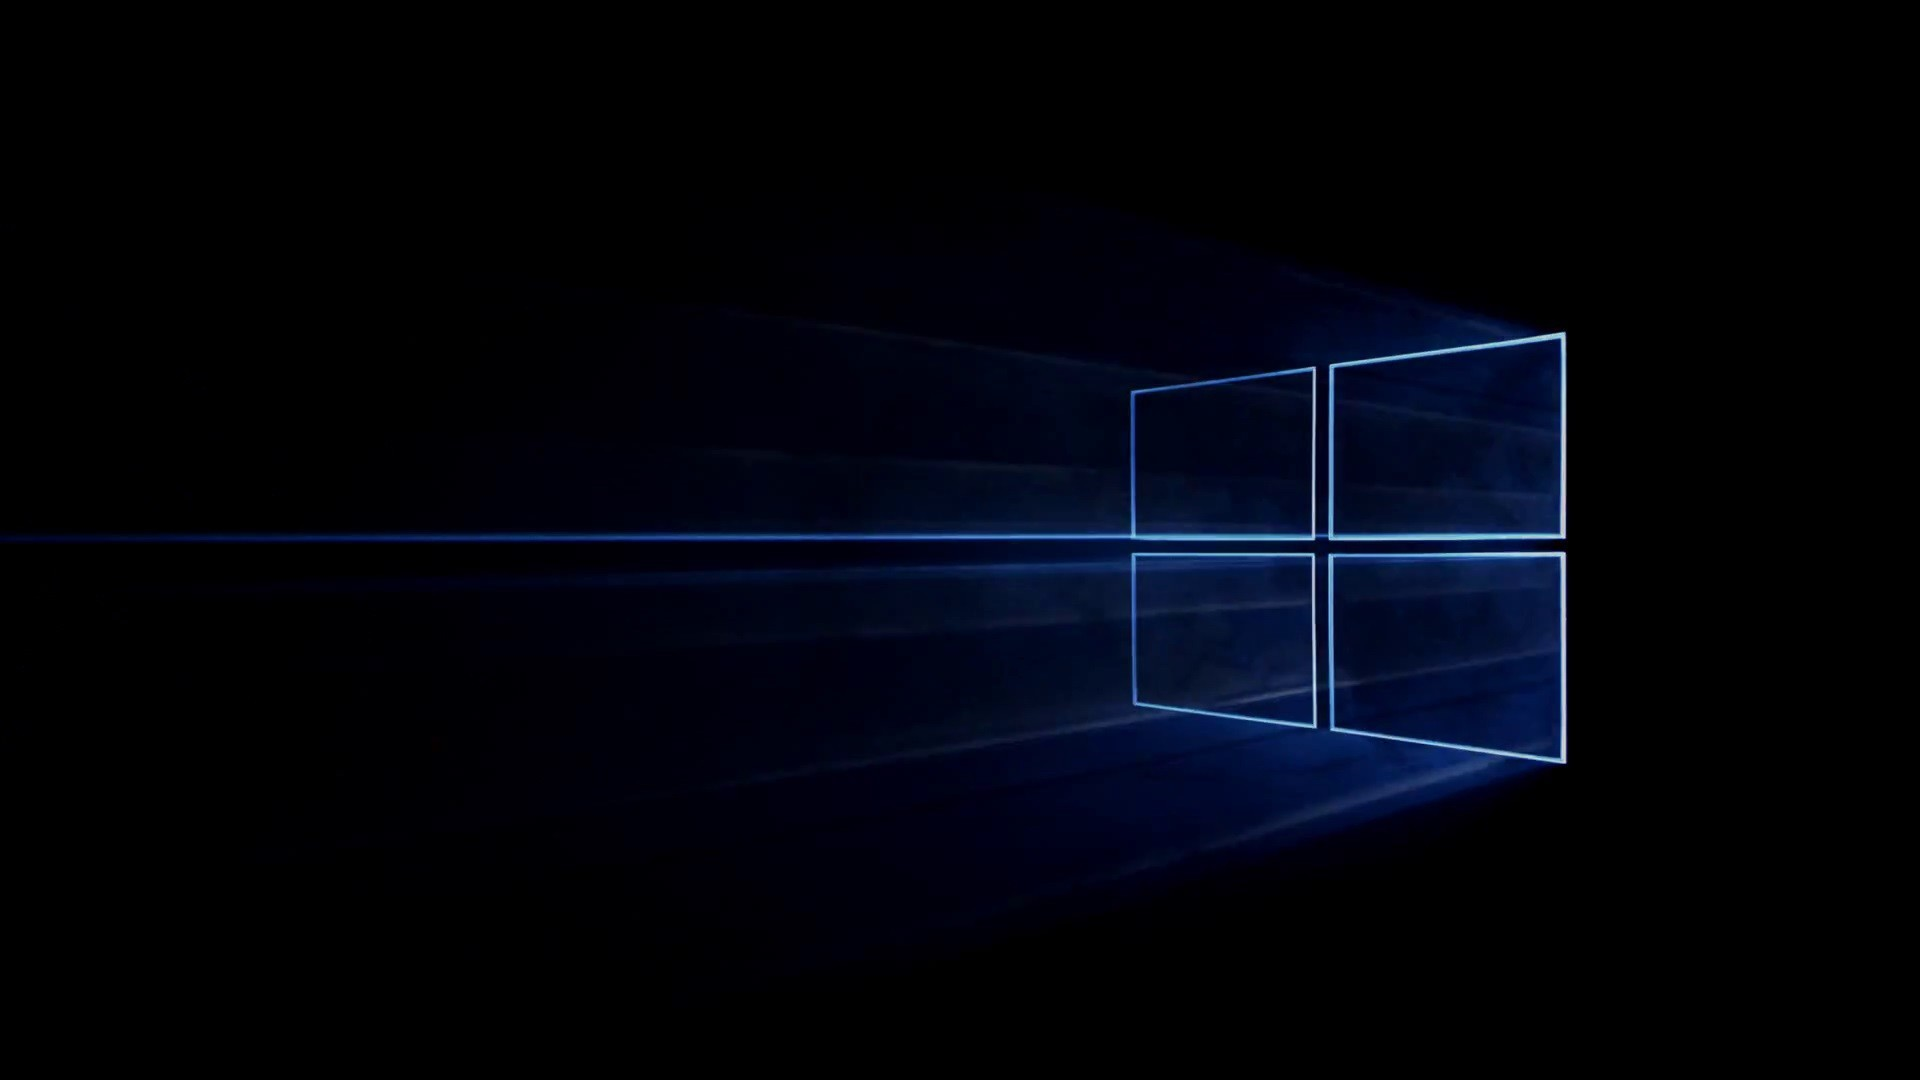 Windows 10 Black Wallpaper 67 Images